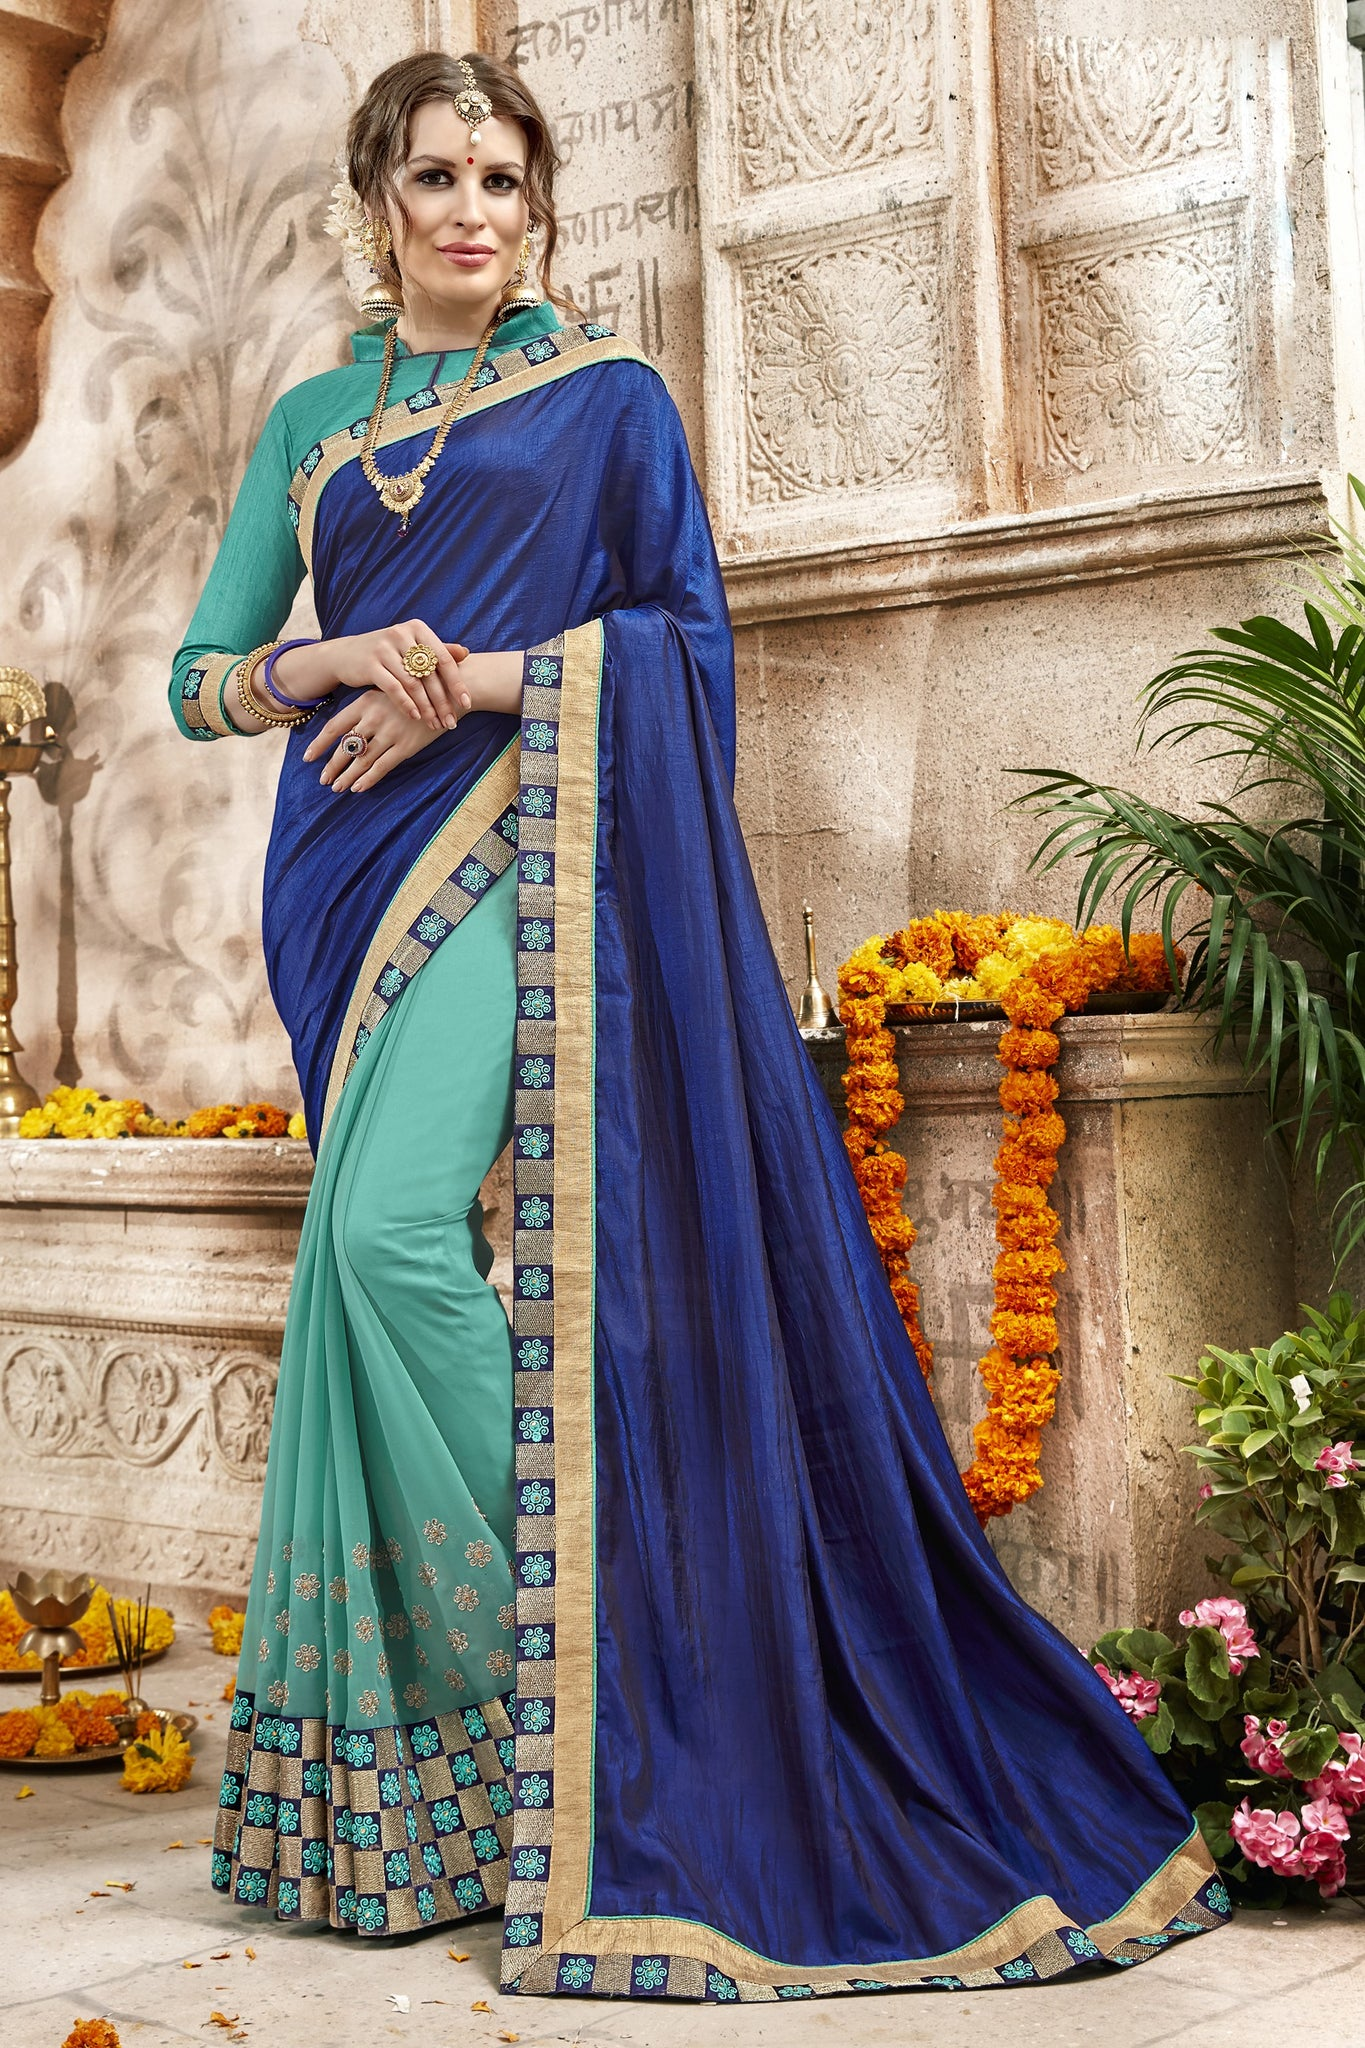 Women's Attractive Looking Classic syle sarees in Georgette fabric party sarees Blue & Turquoise color good Embroidery , Lace Saree FZ 705